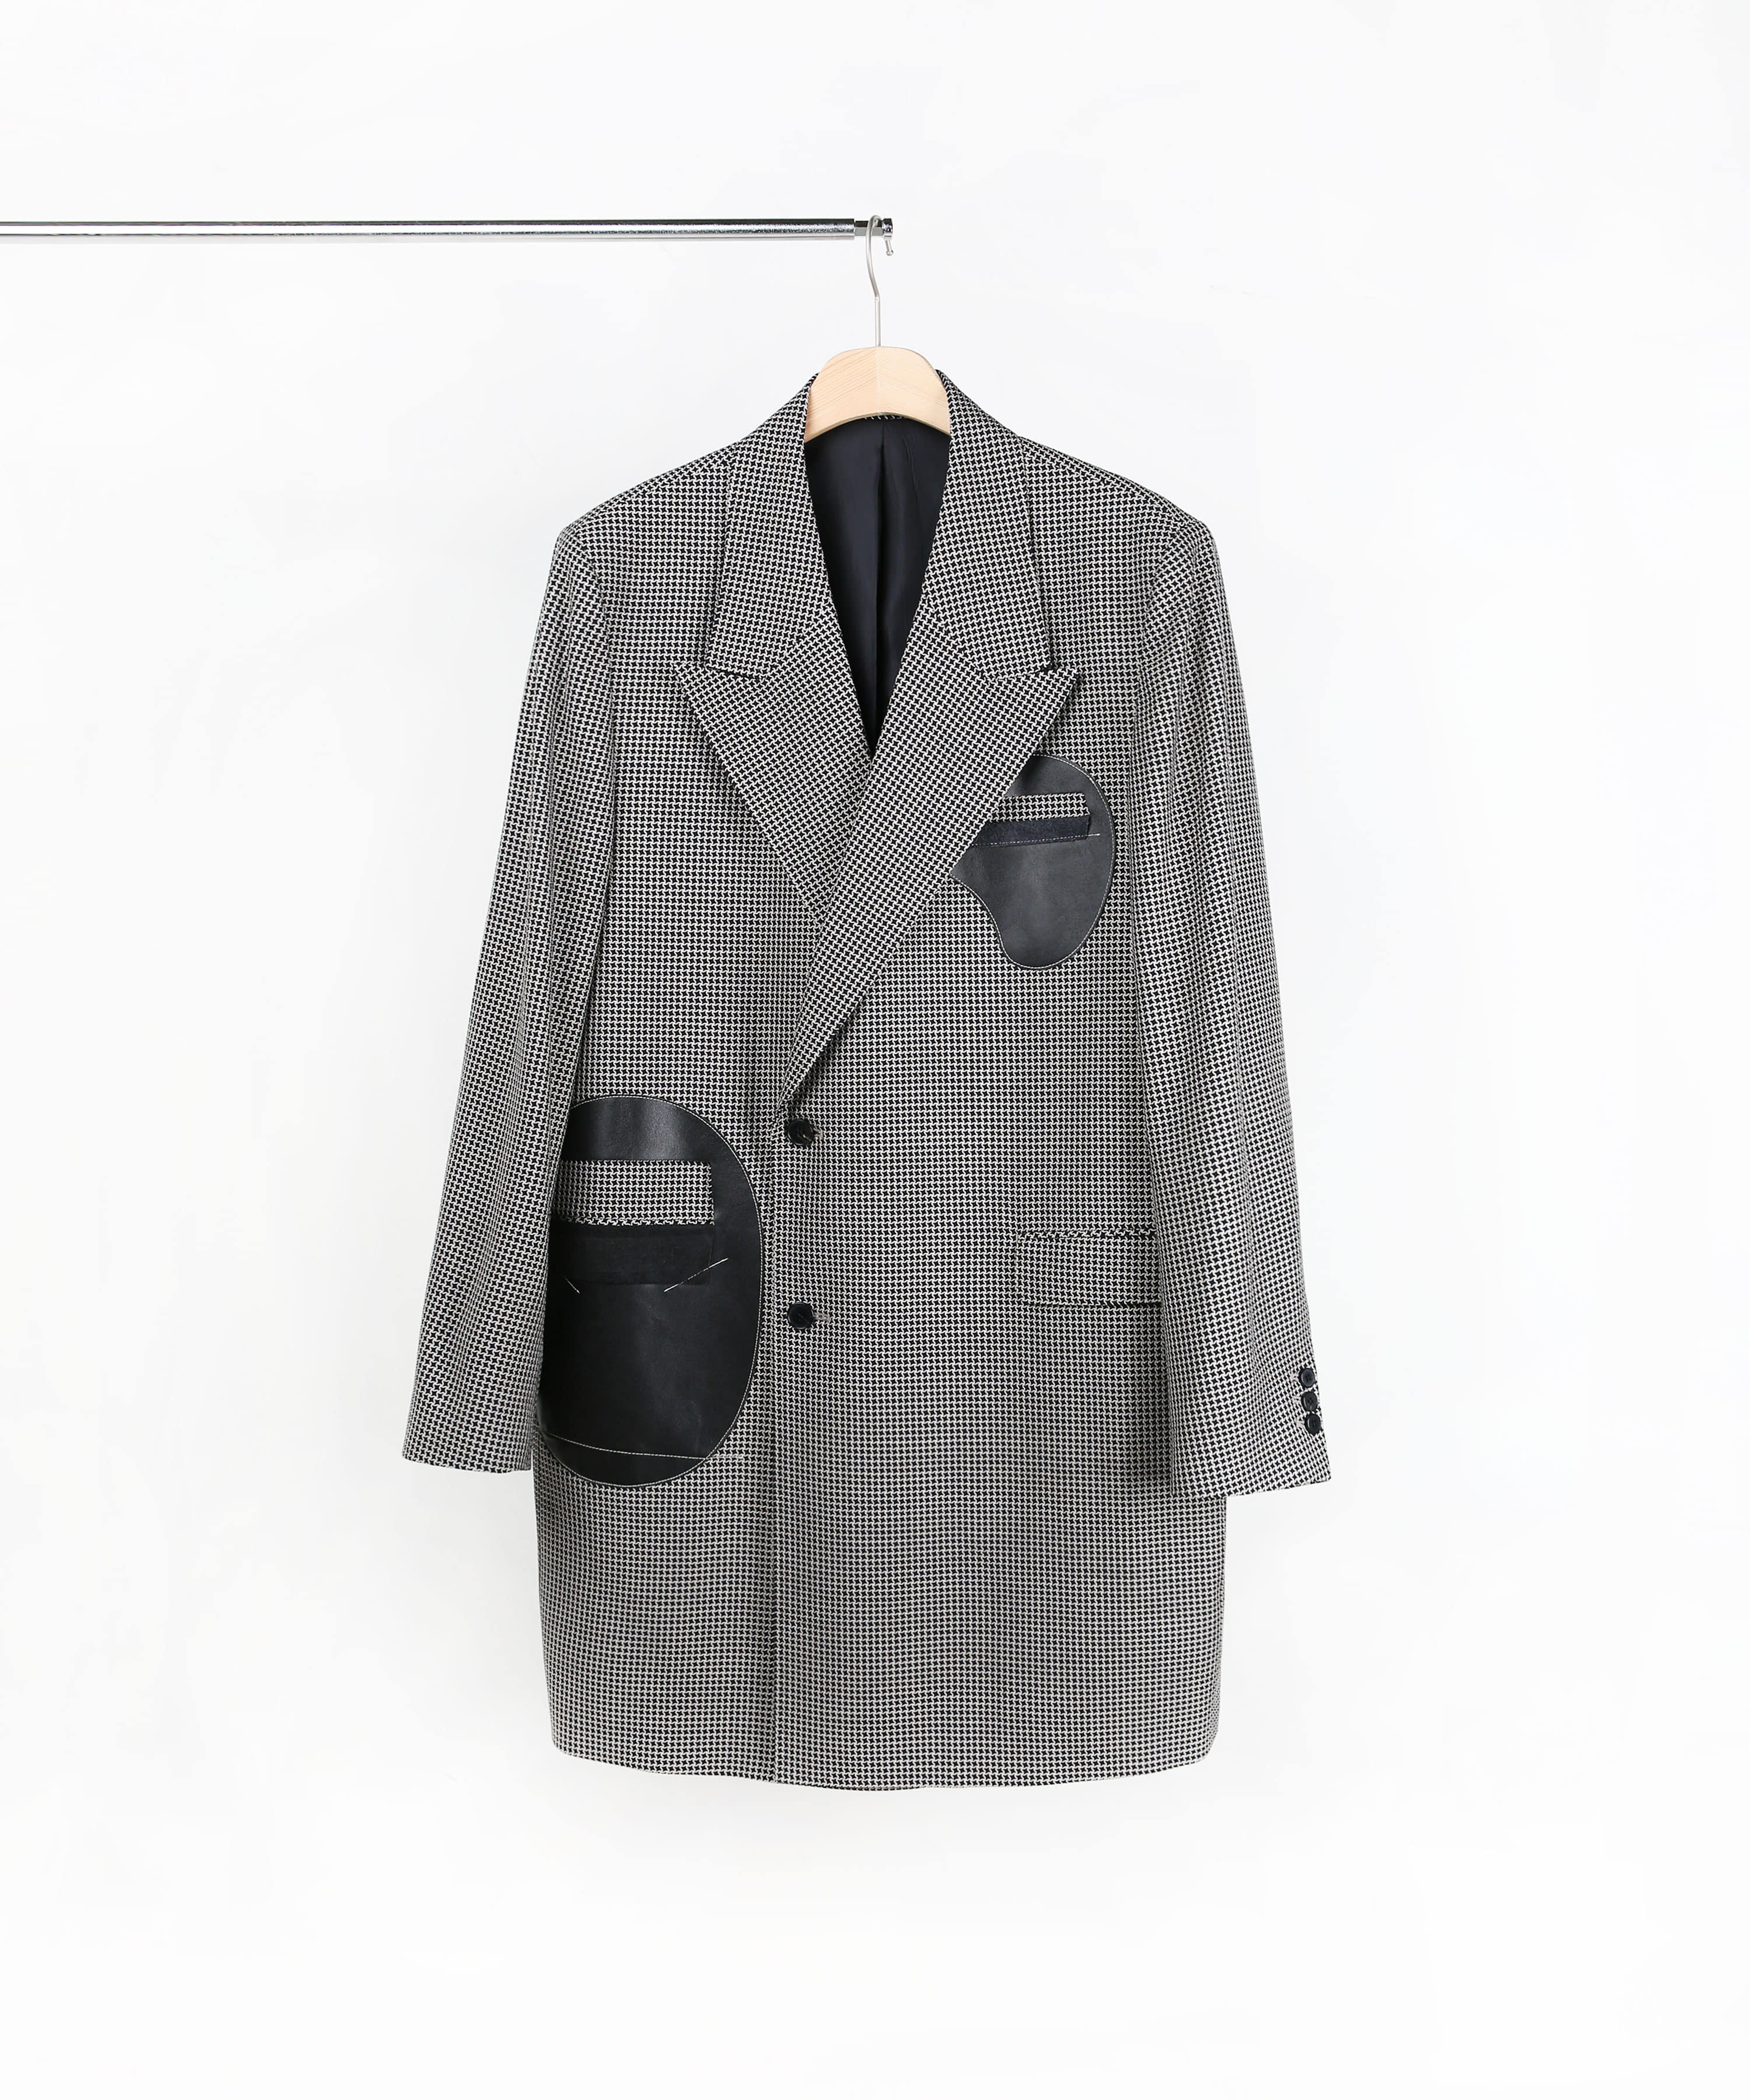 LEATHER PATCH TAILORED COAT HOUND TOOTH